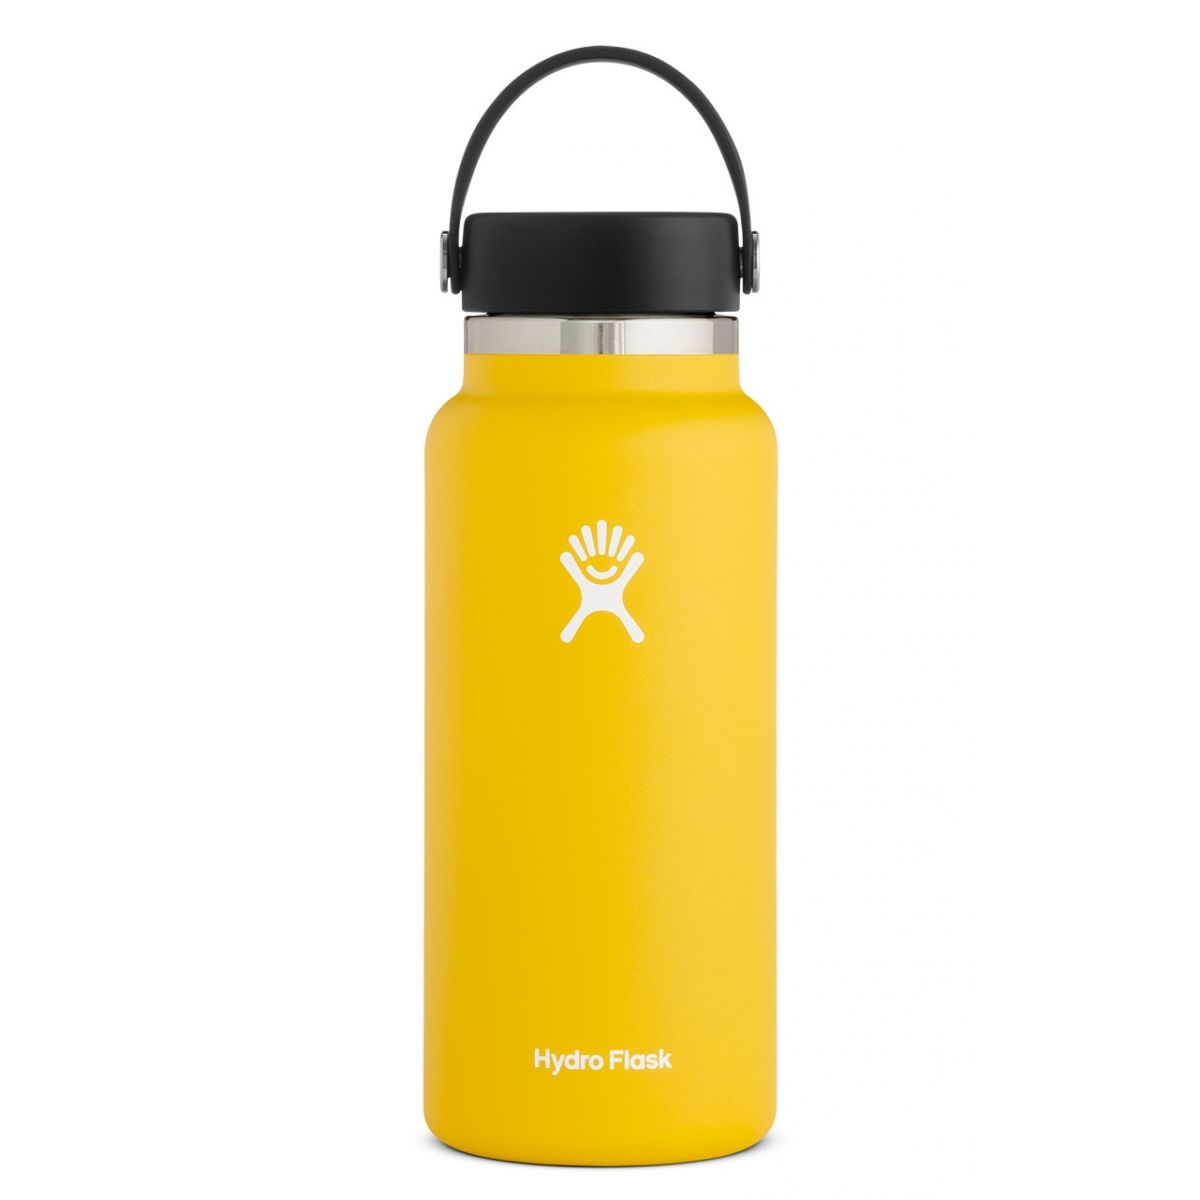 Image For Hydroflask Insulated Wide Mouth Water Bottle, Sunflower